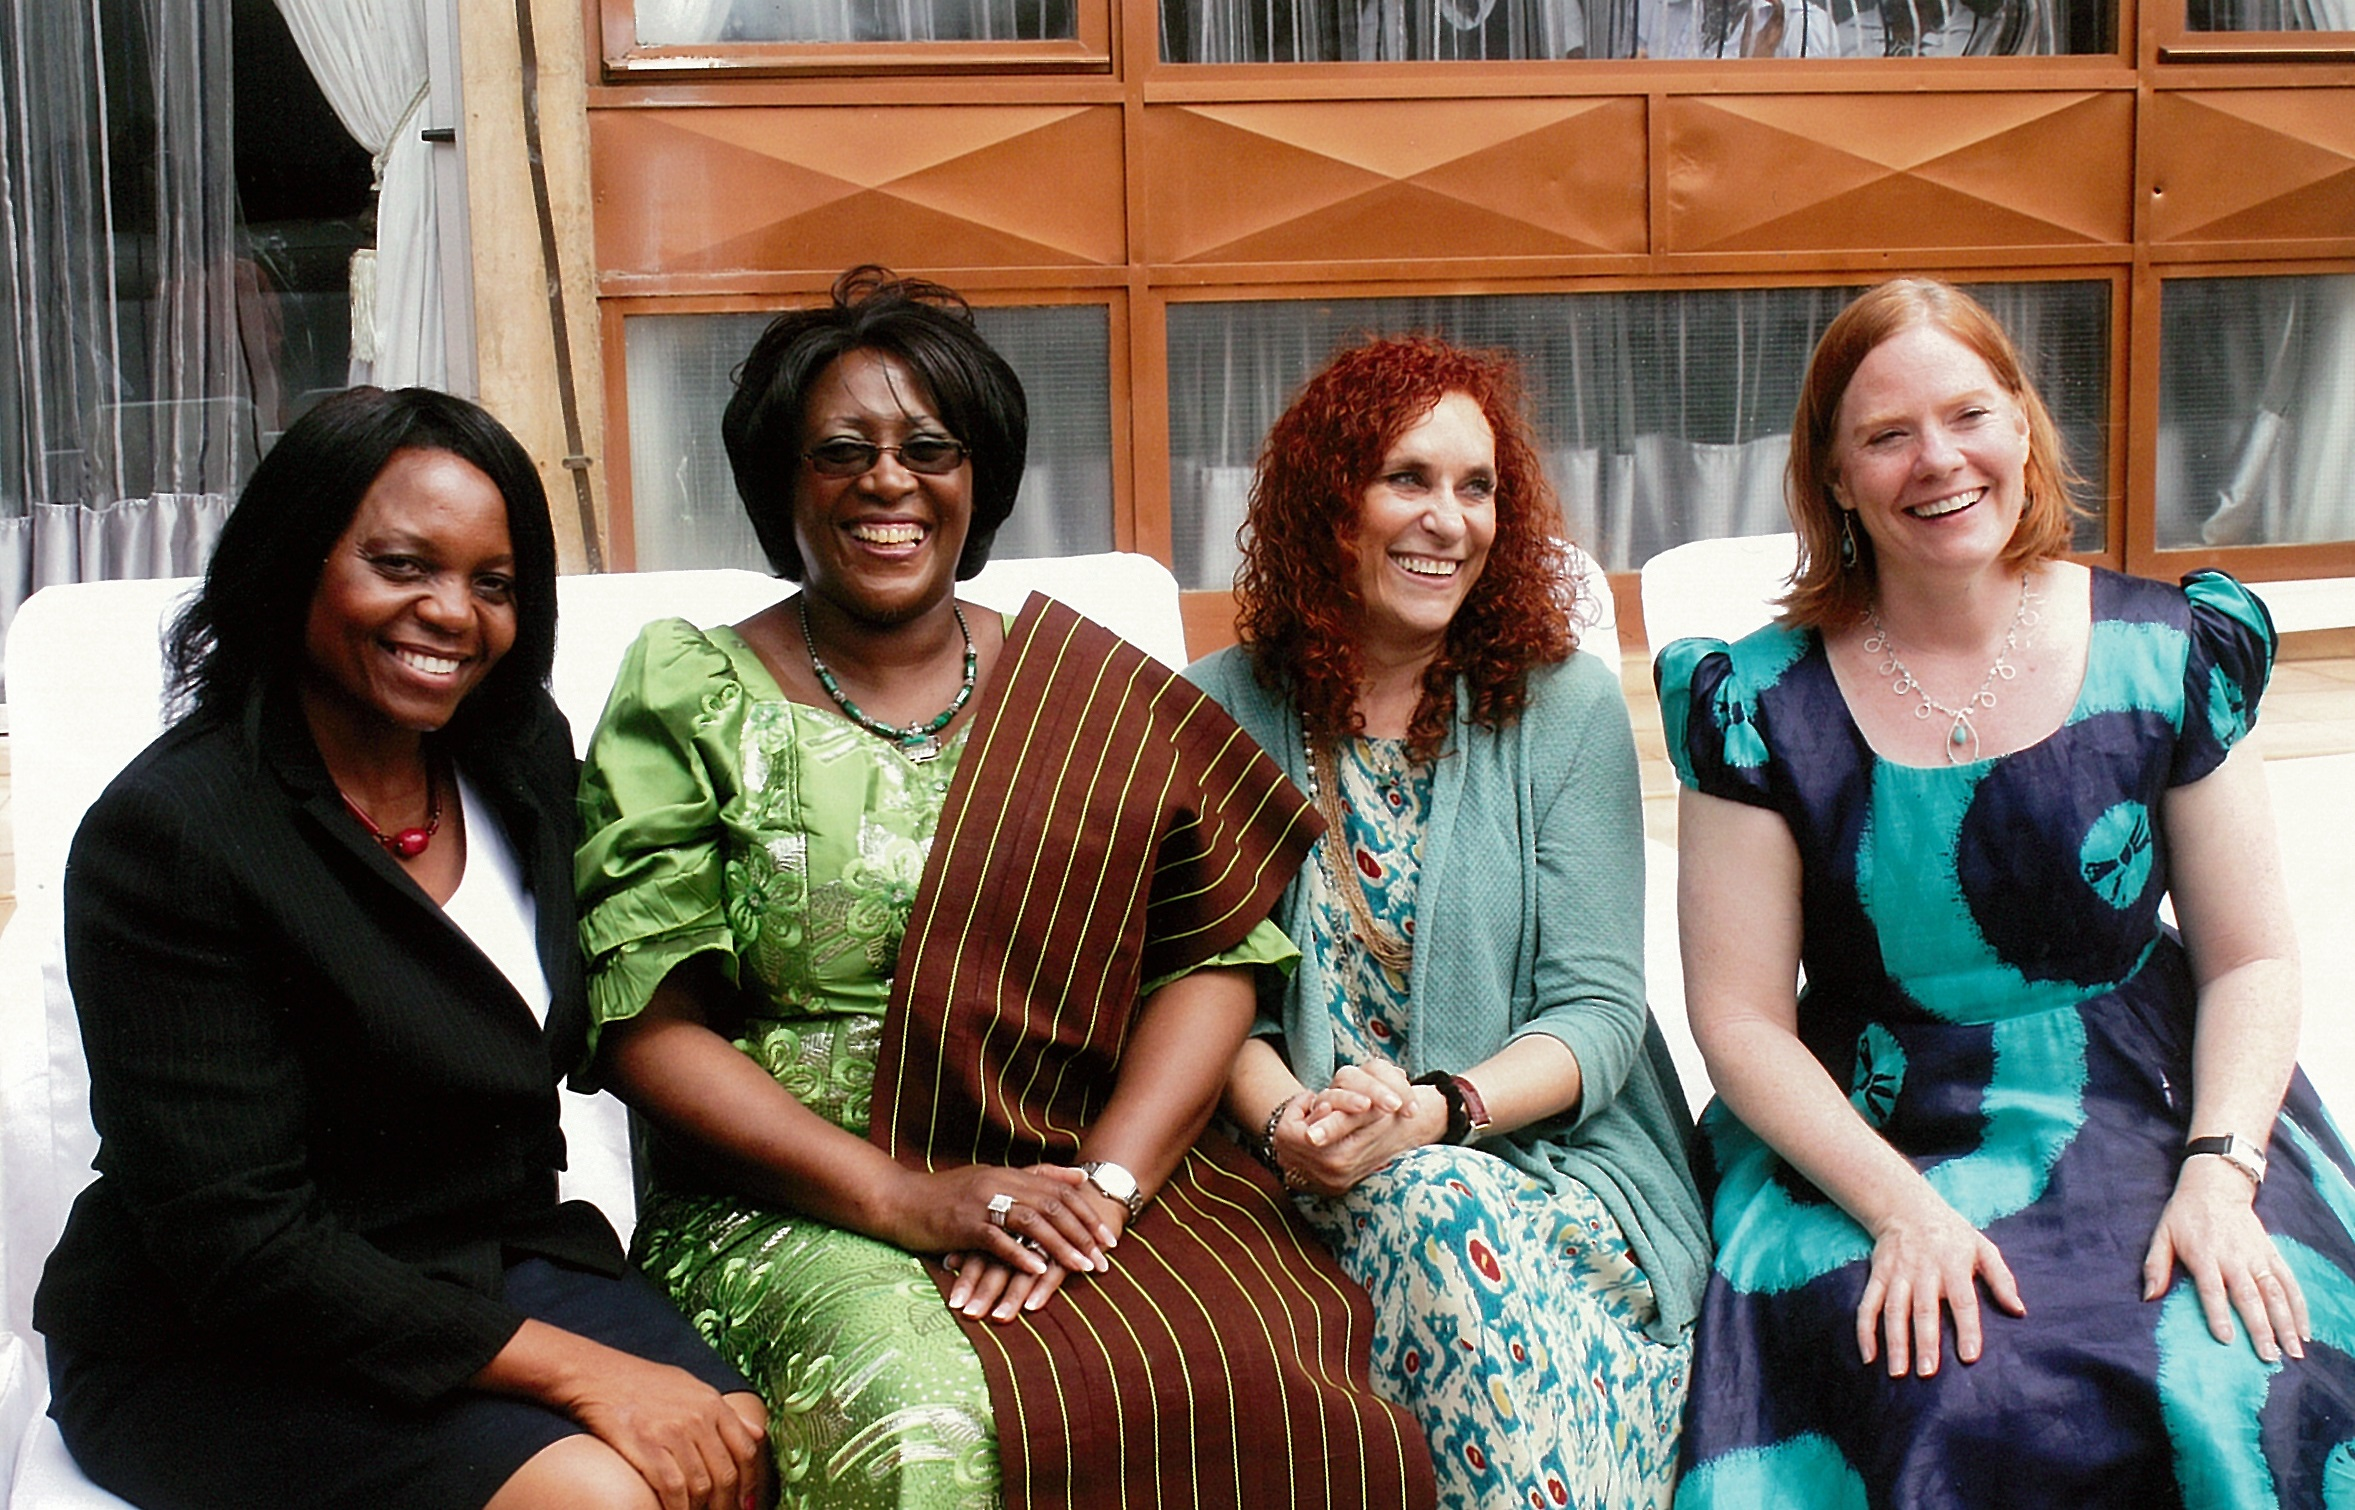 (L to R Zambia NASG staff Rachel Sumotwe, First Lady Dr Kaseba, NASG Project PI Dr. Suellen Miller, NASG Project Director Elizabeth Butrick